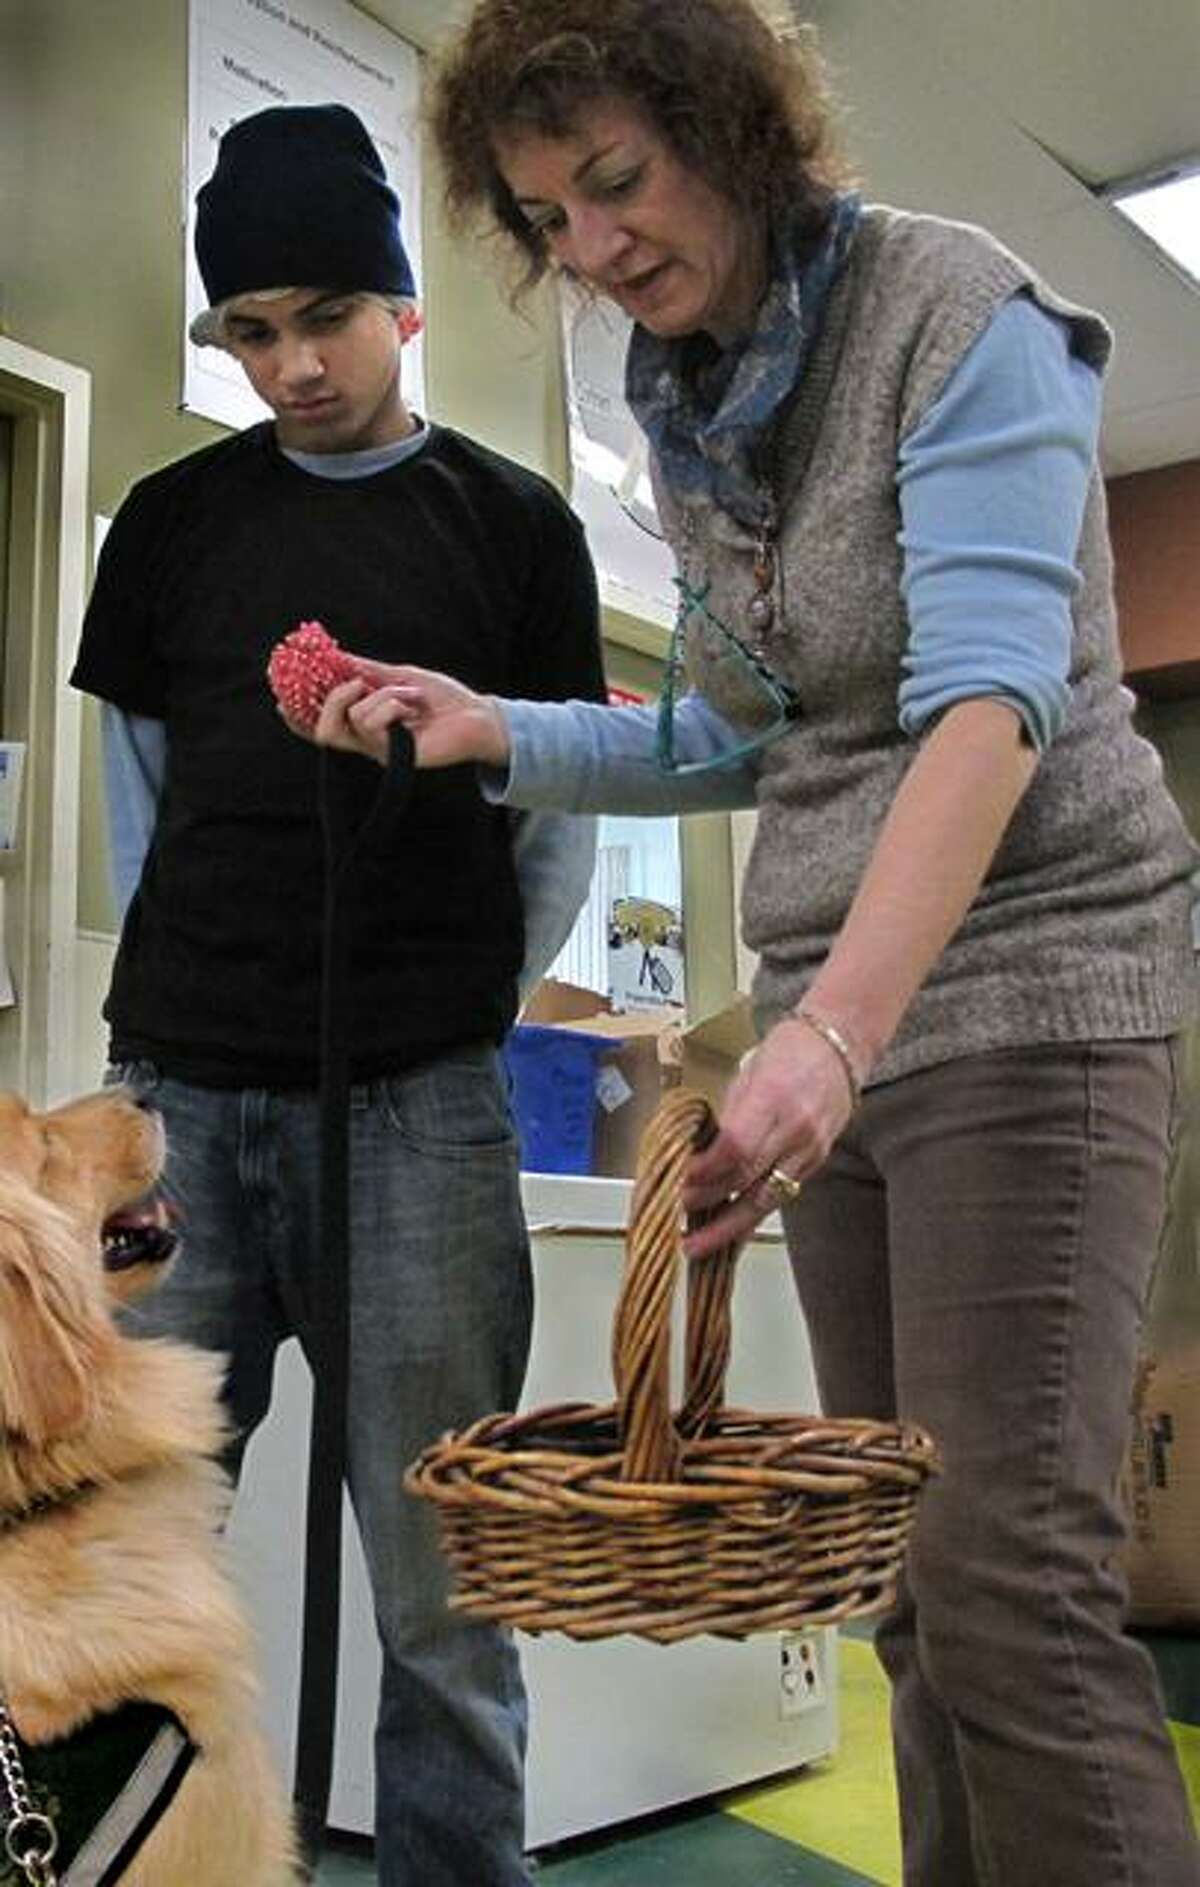 Co-founder of ECAD, Lu Picard, is teaching Allen to be the best service dog he can be. She's teaching him to carry a basket. One of her students, Cesar looks on. Picard co-founded ECAD with her husband Dale in 1995.